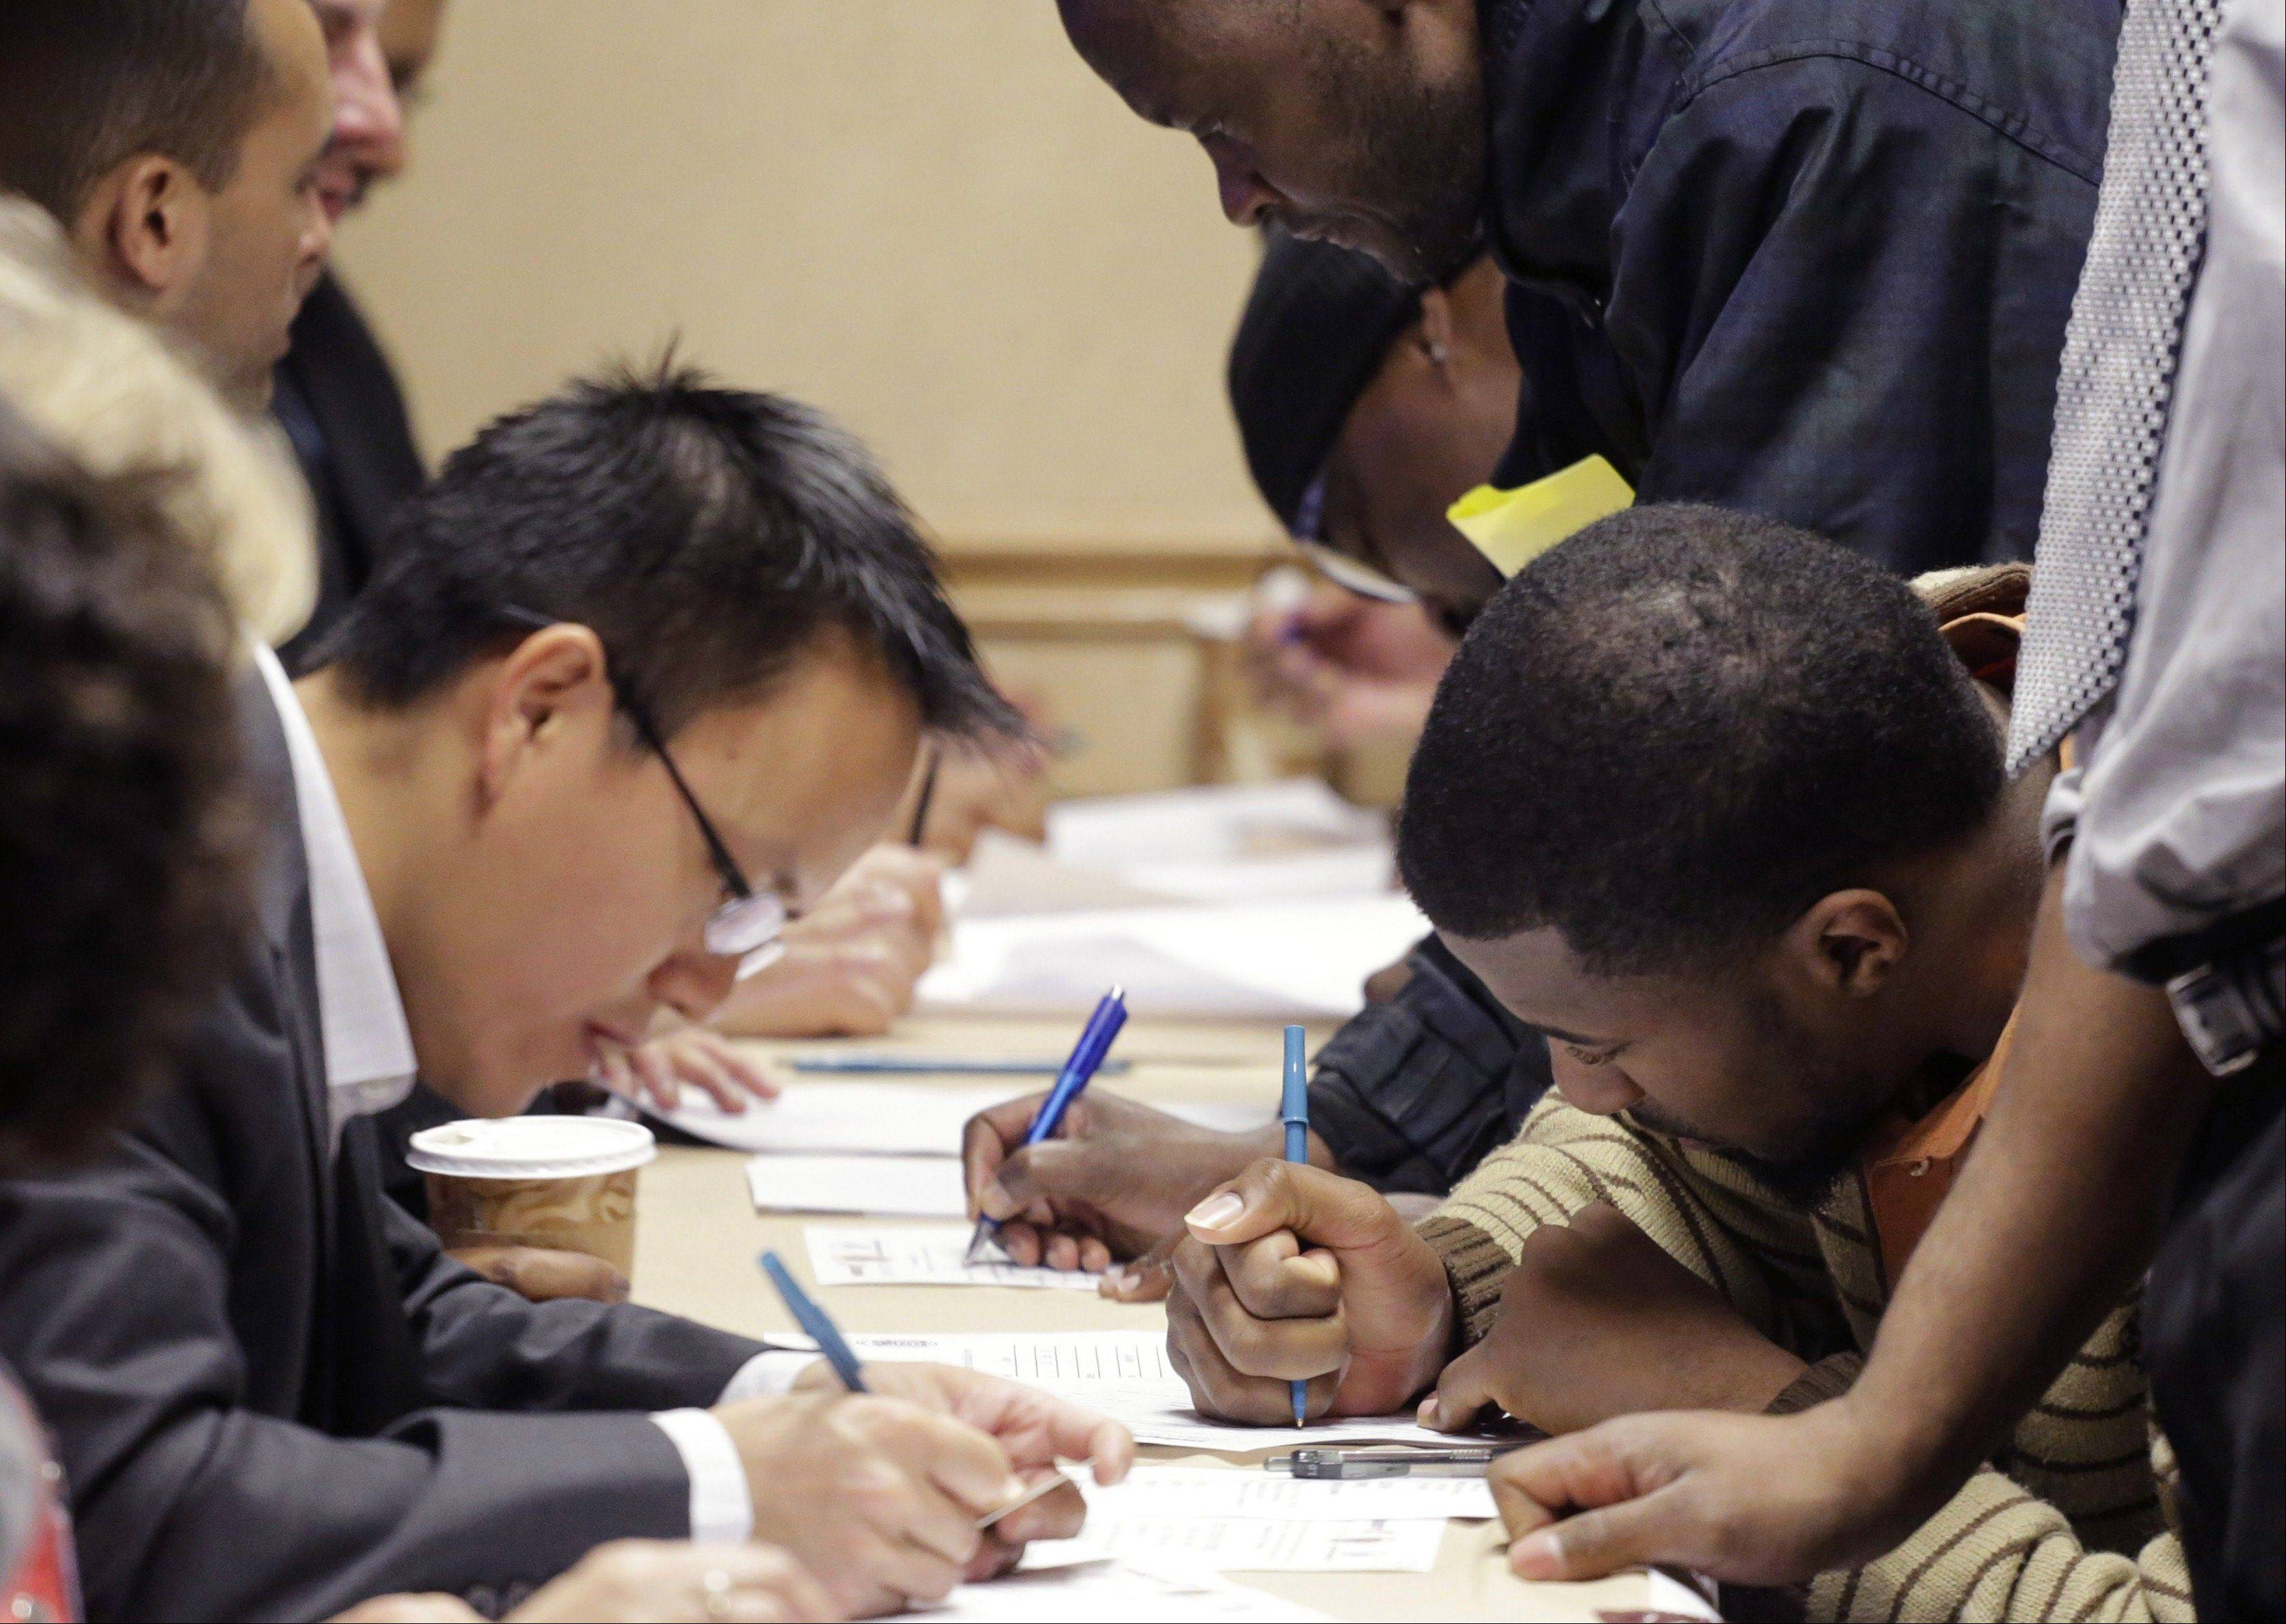 Job applicants complete forms at a job fair sponsored by Swissport, in Newark N.J.